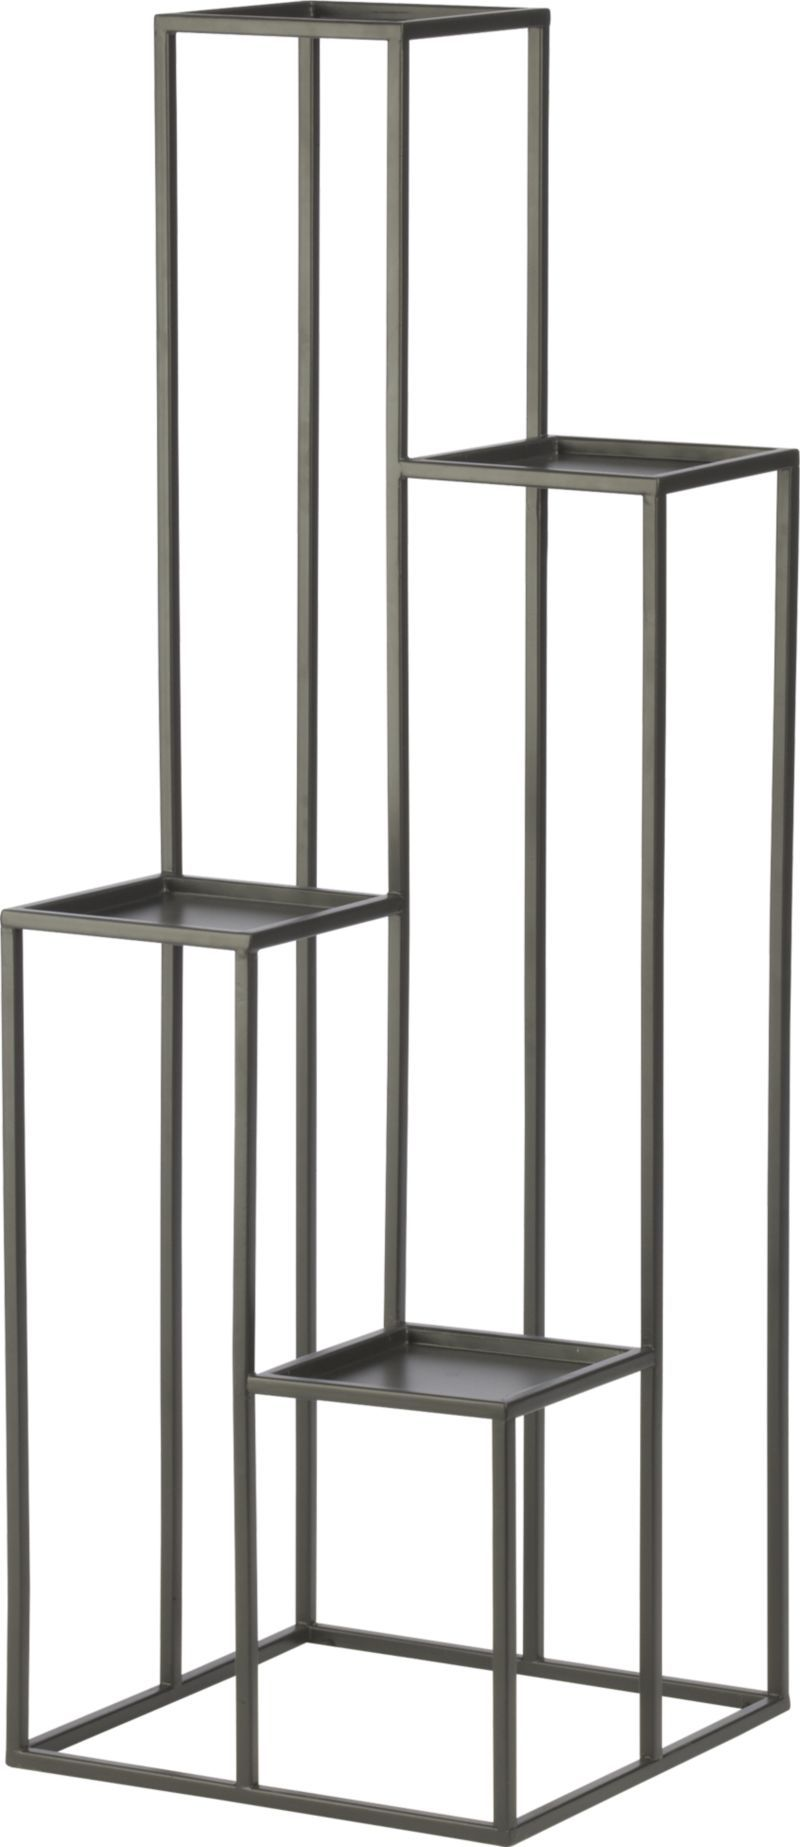 Quadrant Plant Stand In Garden Patio Crate And Barrel